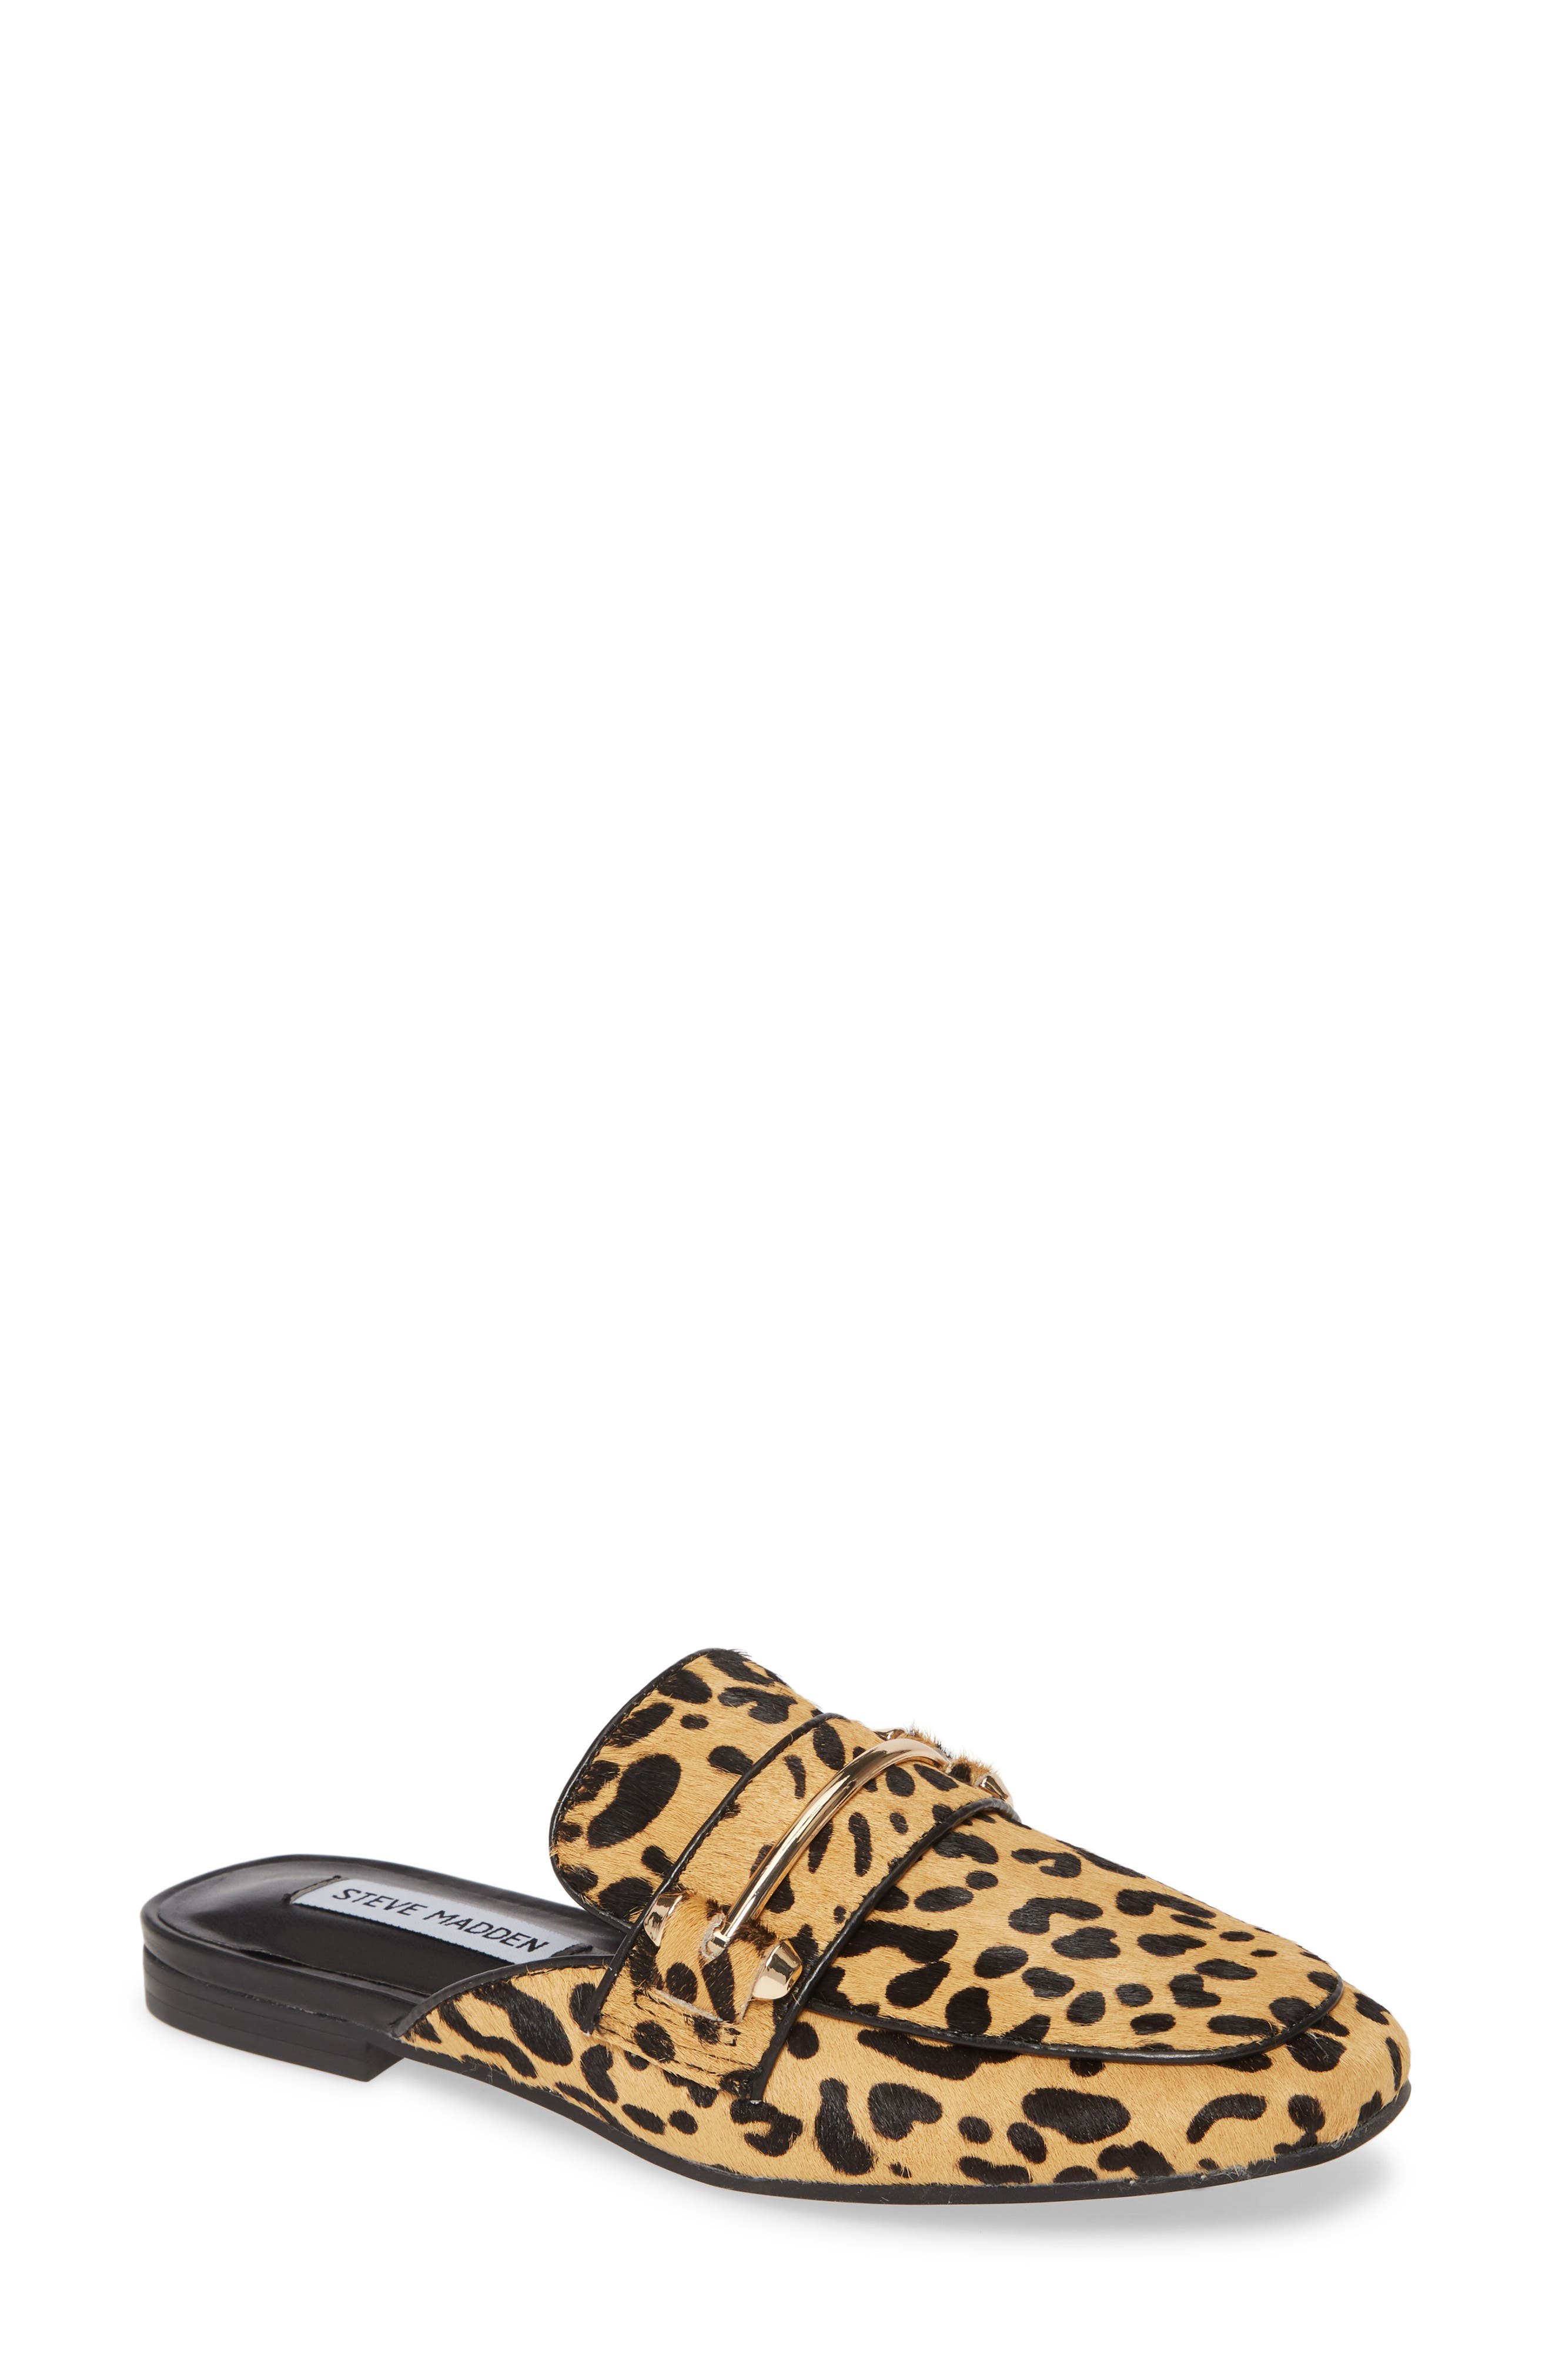 Steve Madden Kite Genuine Calf Hair Loafer Mule (Women)